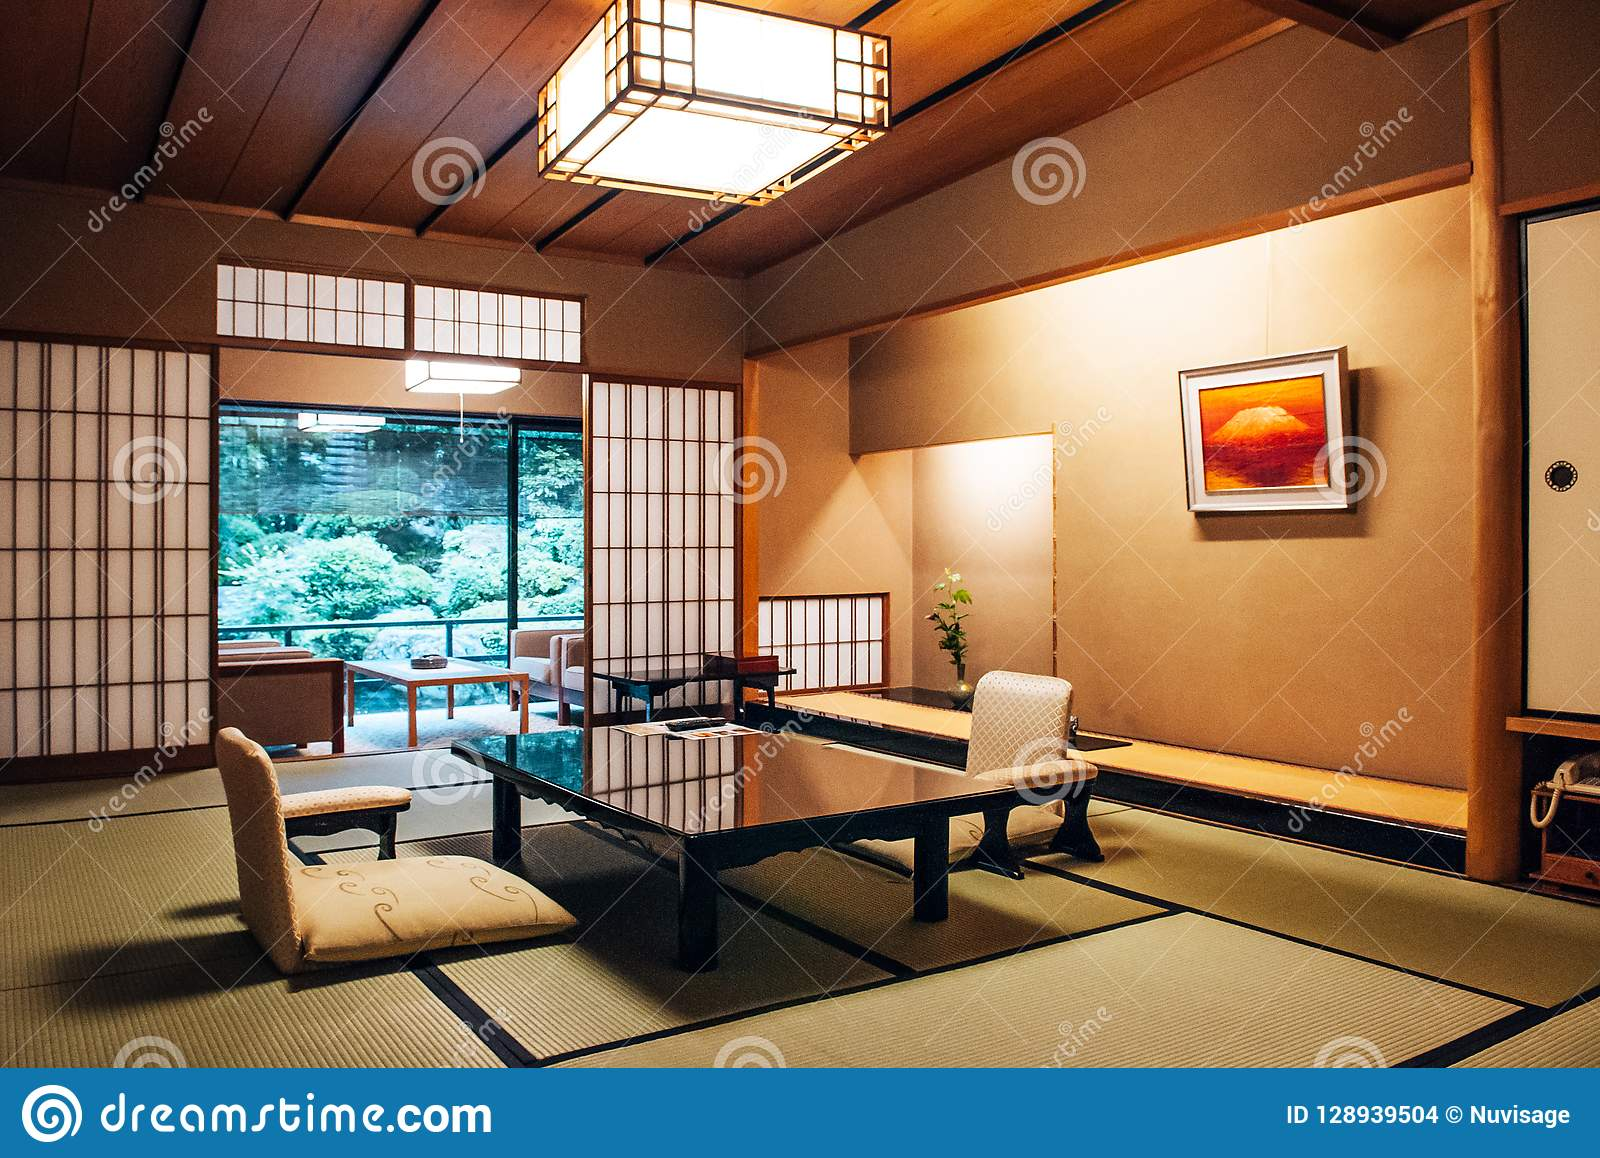 Traditional Japanese Living Room Tatami Mat Floor Wood Table And Editorial Stock Image Image Of Resort Architecture 128939504